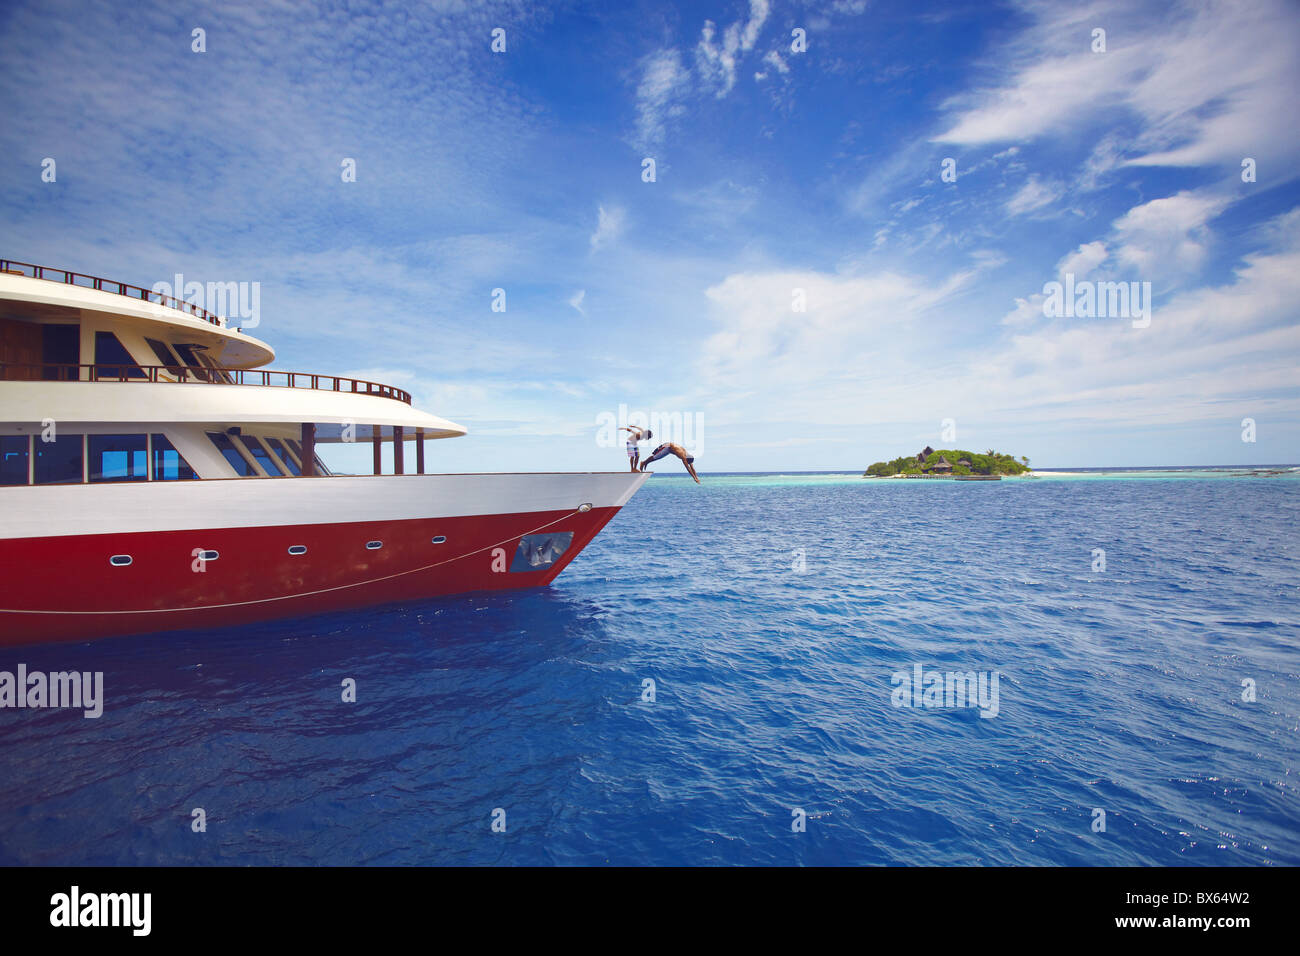 Young people jumping from boat into sea, Maldives, Indian Ocean, Asia - Stock Image